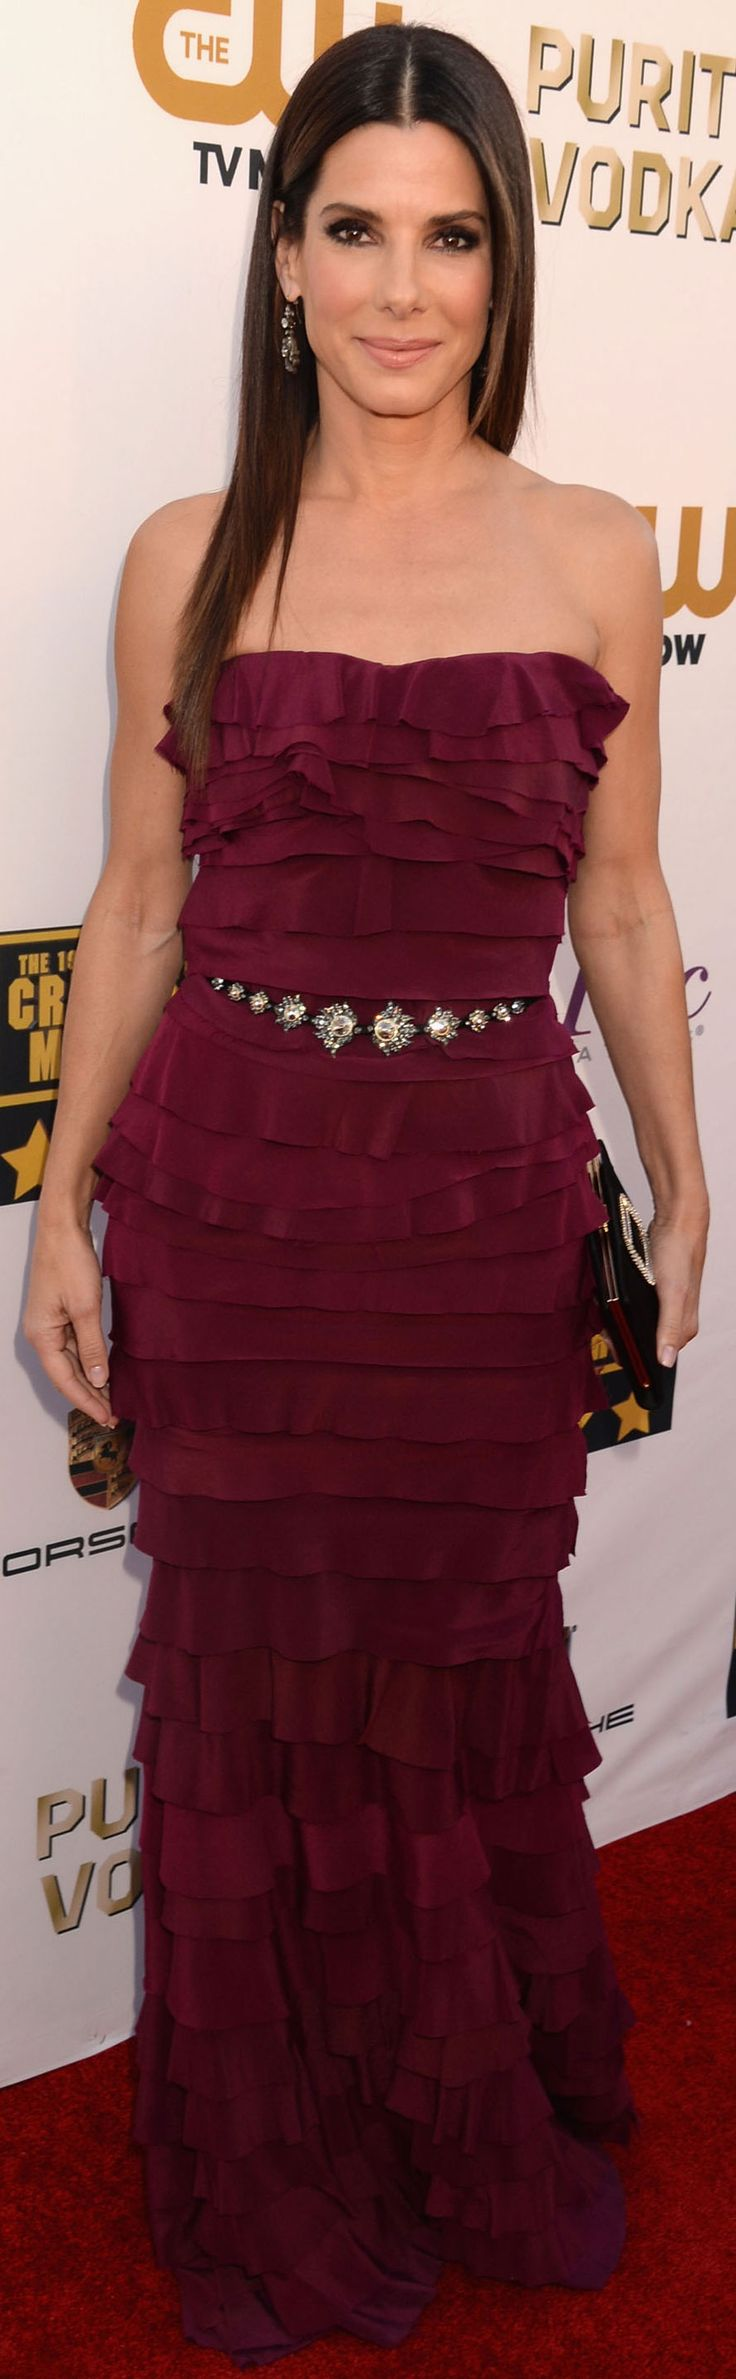 Sandra Bullock in a tiered dress and sparkling belt at the Critics' Choice Awards